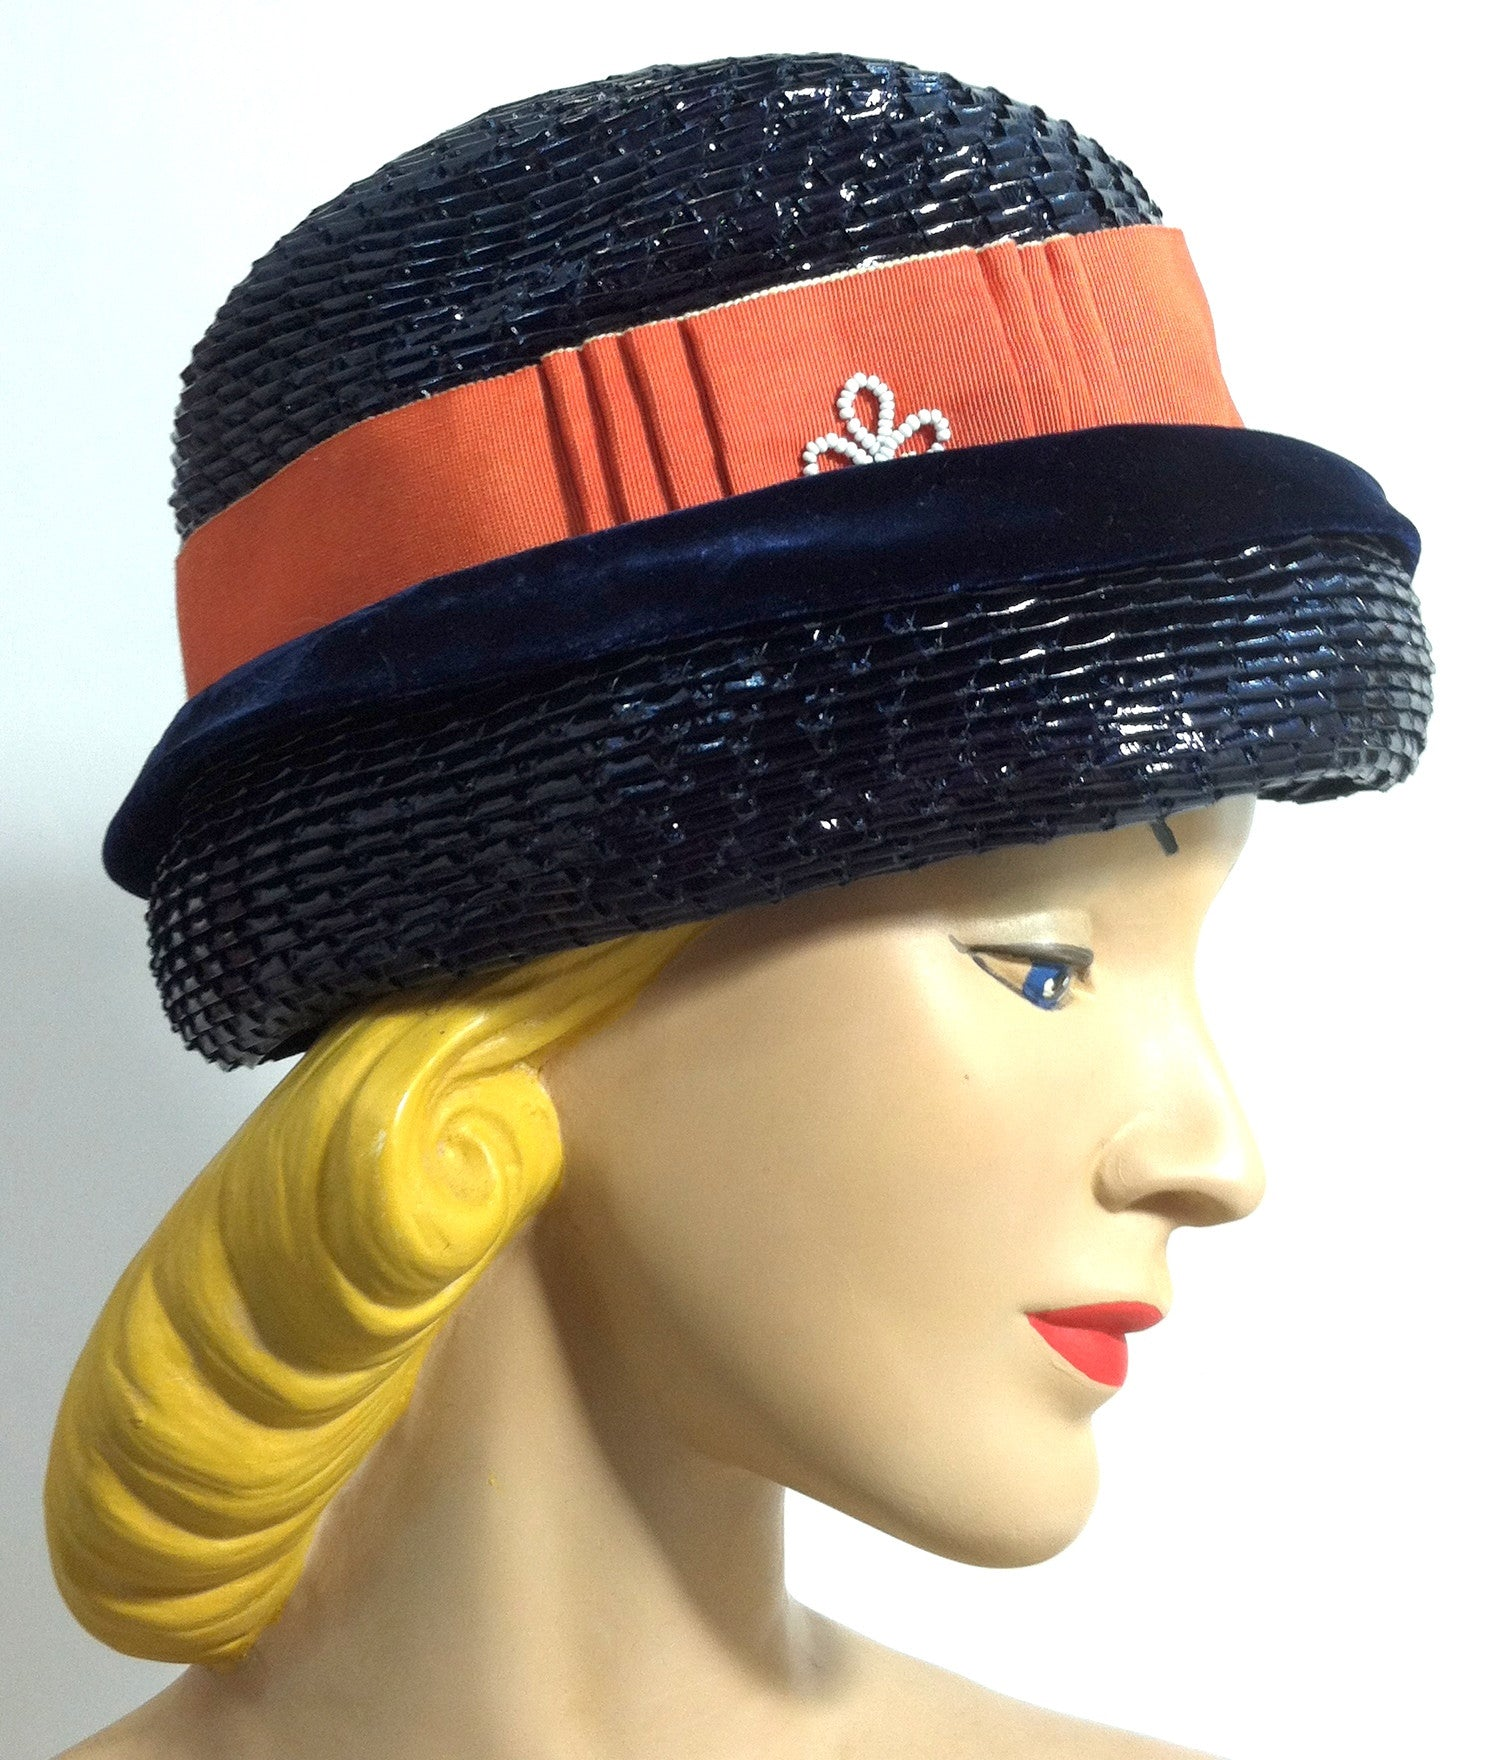 Orange Ribbon Trimmed Elegantly Mod Glossy Blue Sisal Hat w/ Beads circa 1960s Dorothea's Closet Vintage Hat